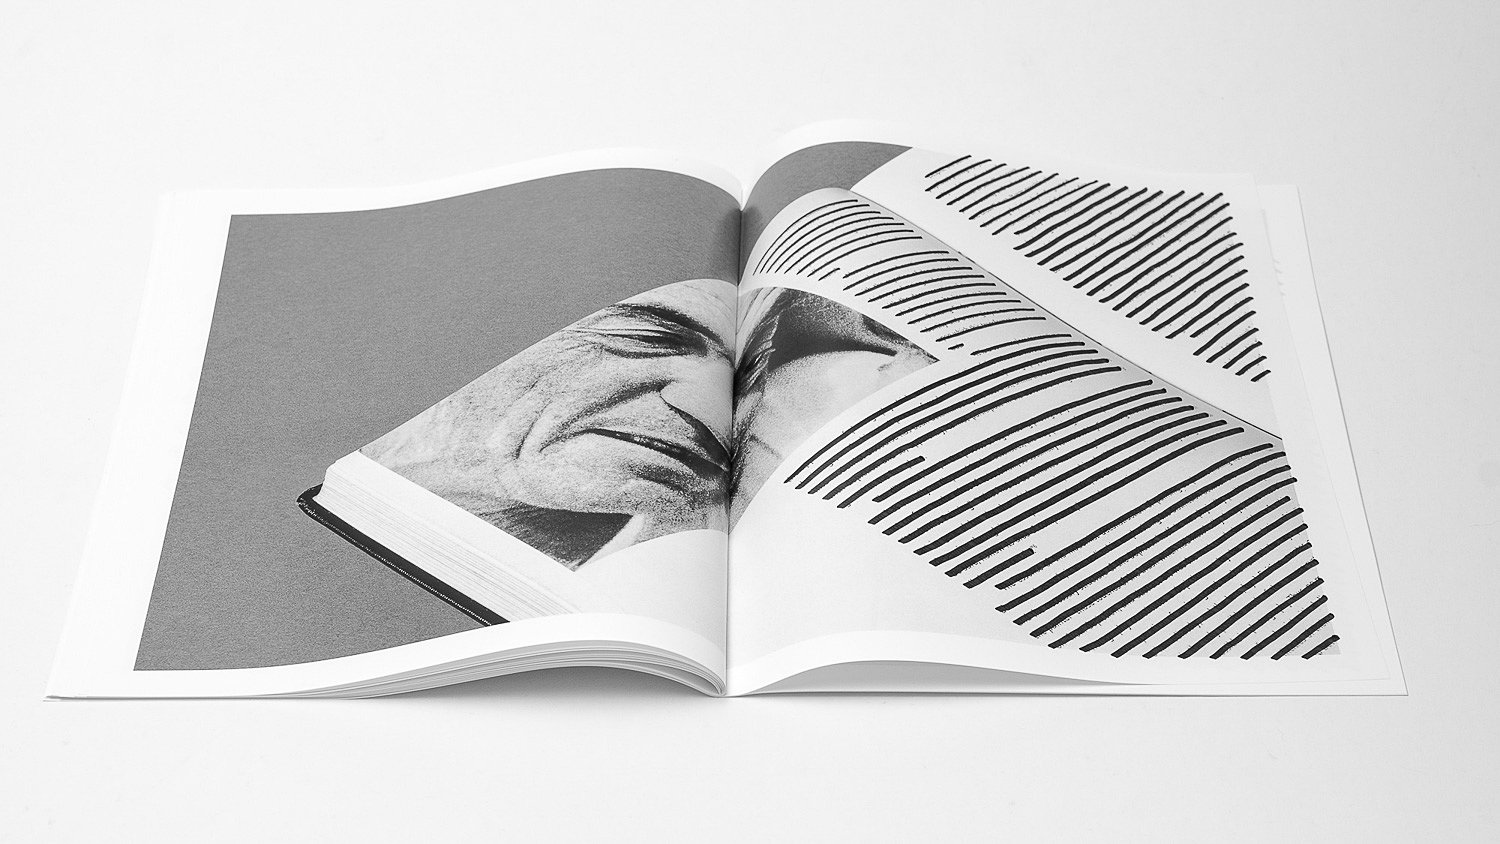 The resulting photographs were transferred back into a book layout and printed.